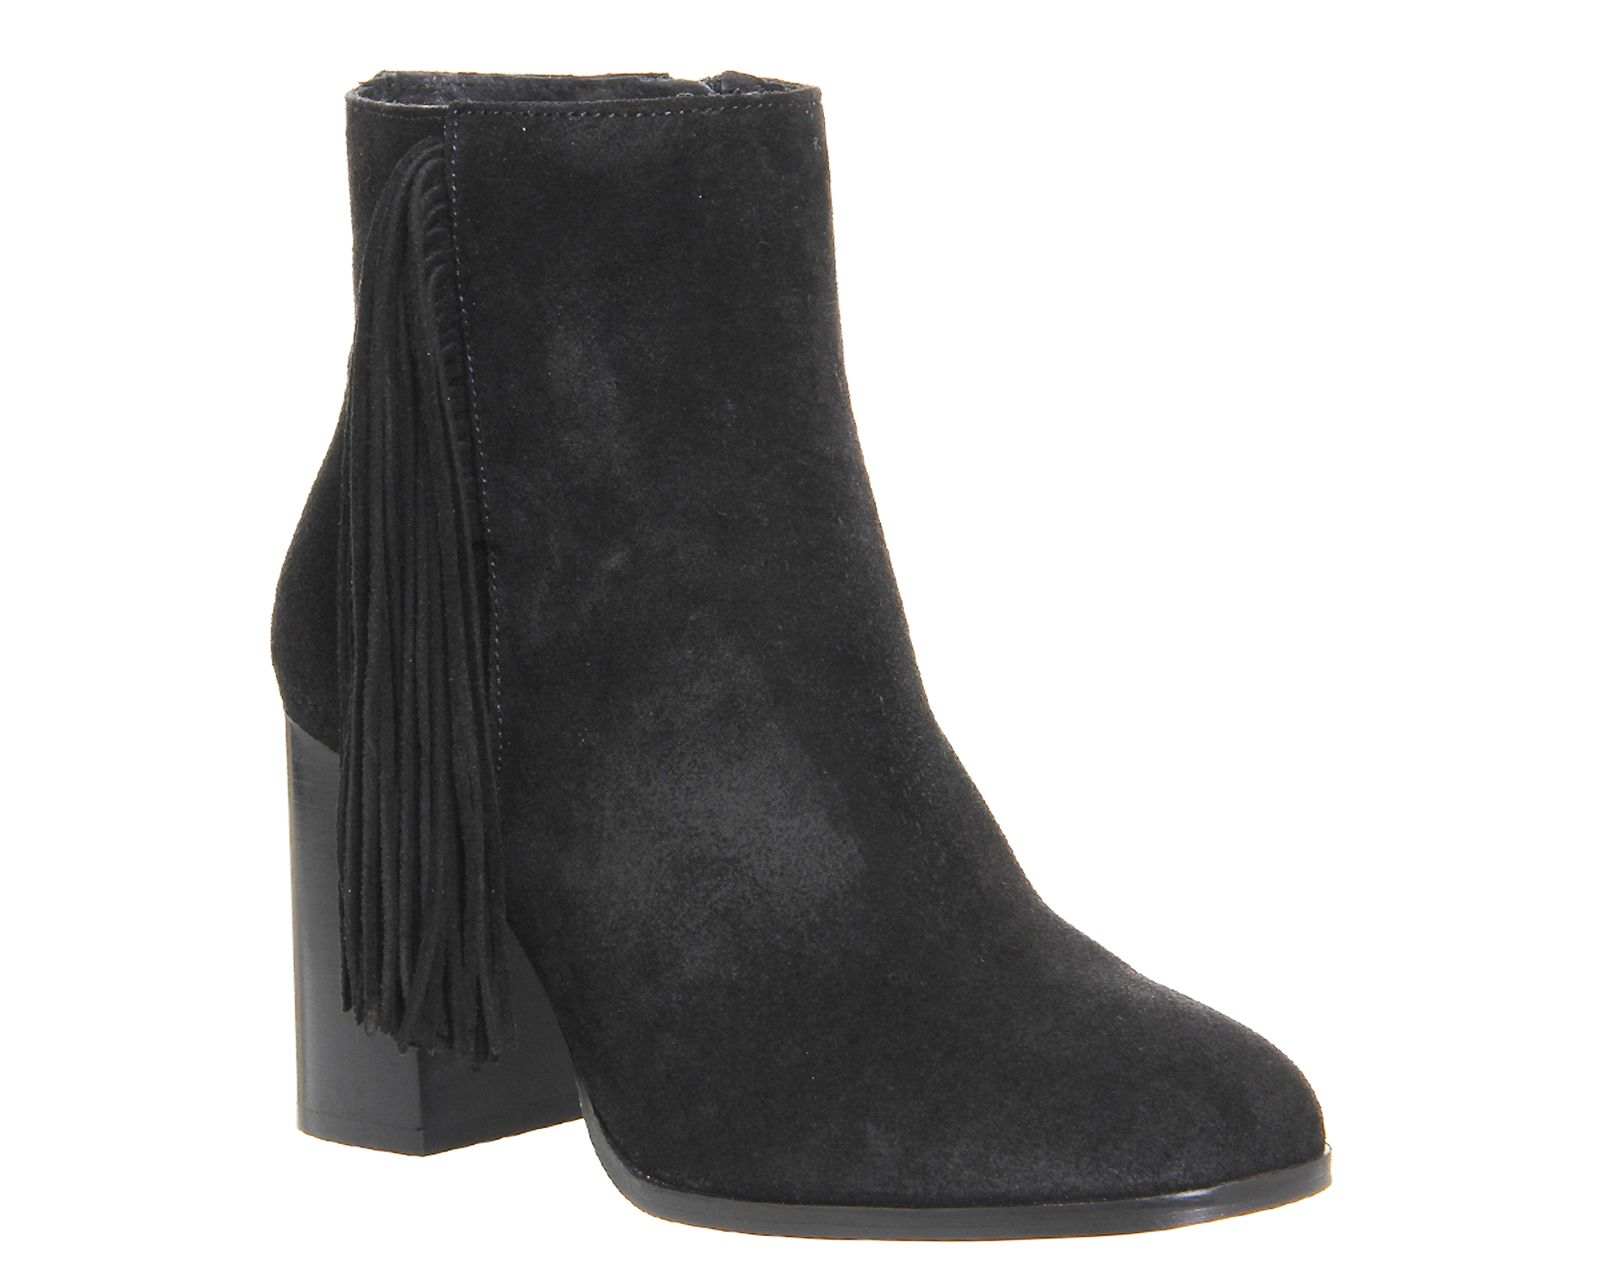 Office Ideally Square Tassle Boots in Black Suede (Black)